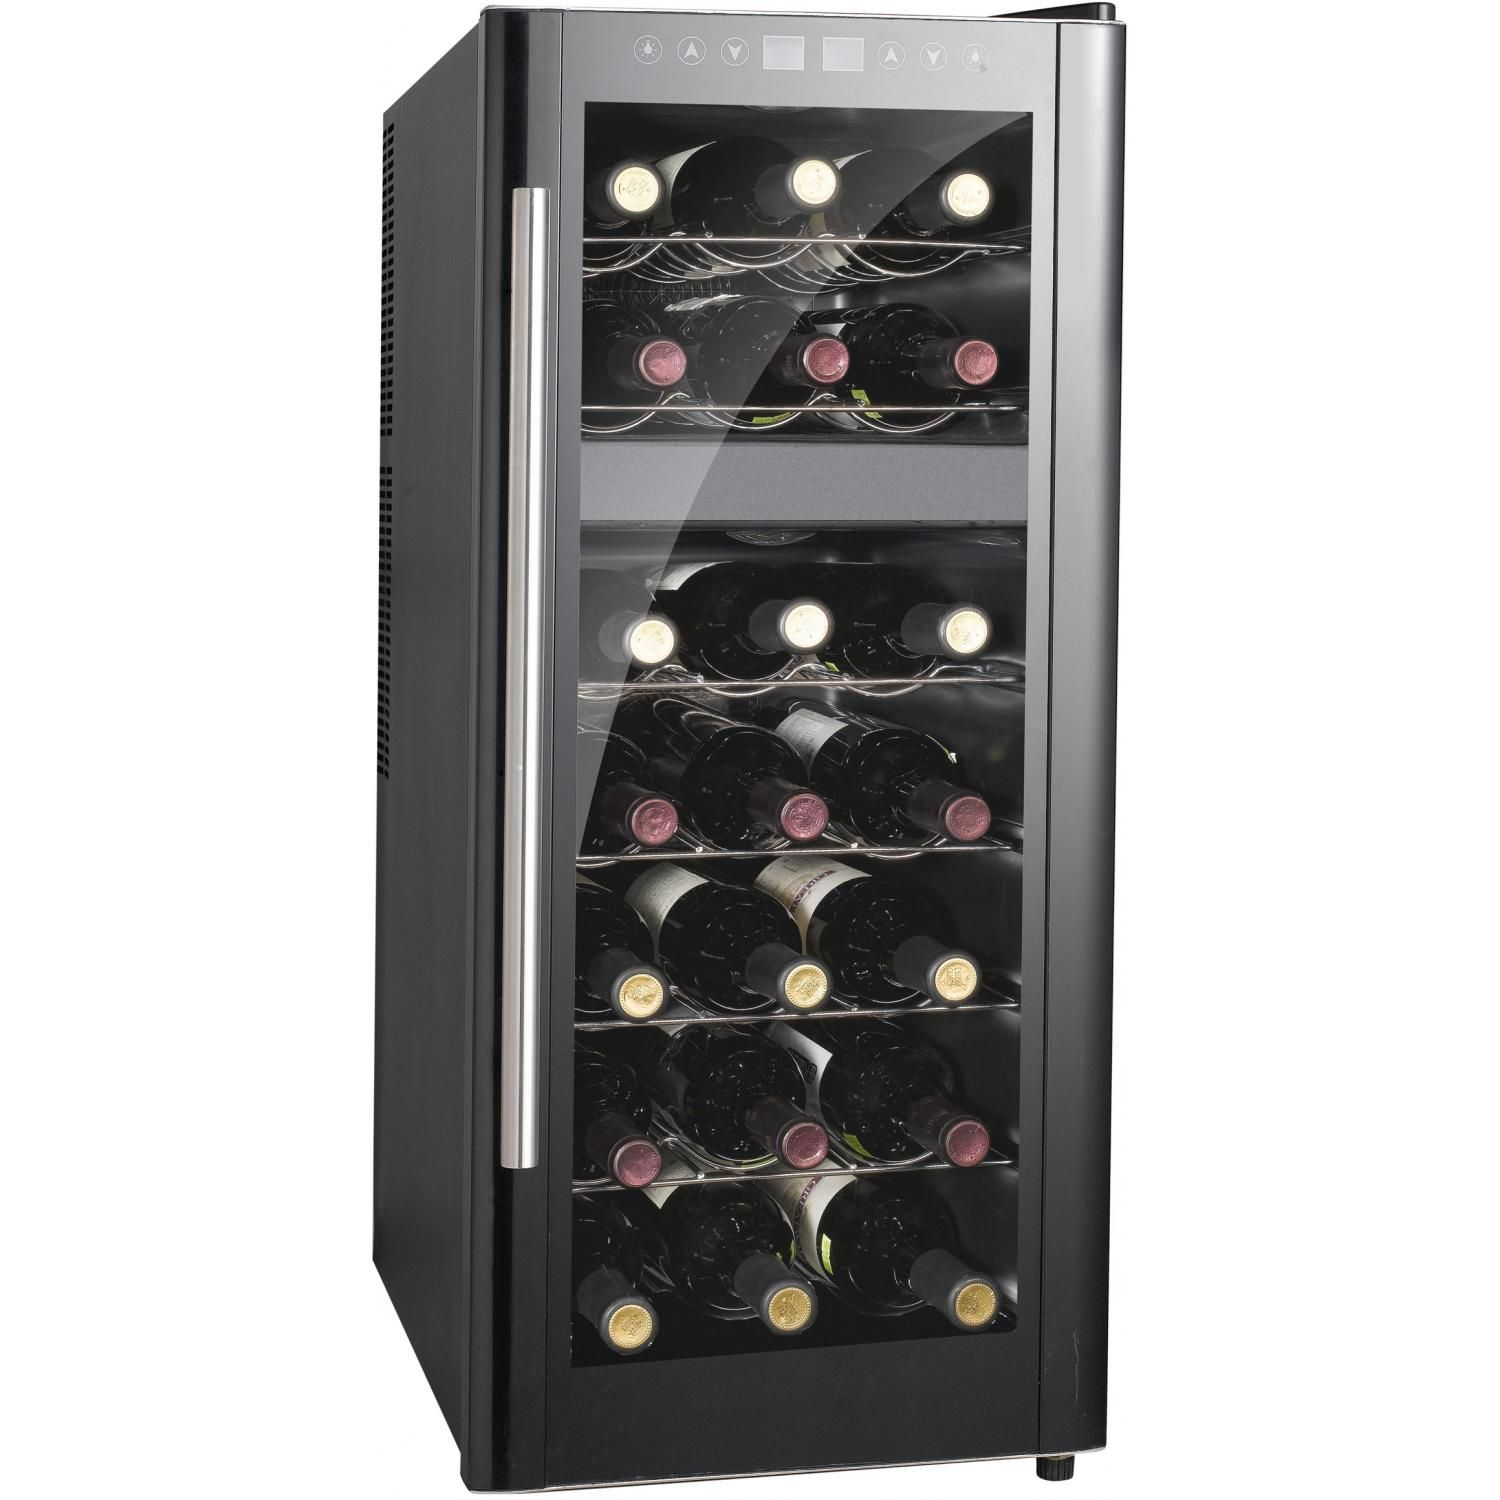 Sunpentown 21 Bottle Dual Zone Thermoelectric Wine Cooler With Heating Wc 2192dh Thermoelectric Wine Cooler Wine Refrigerator Italian Wine